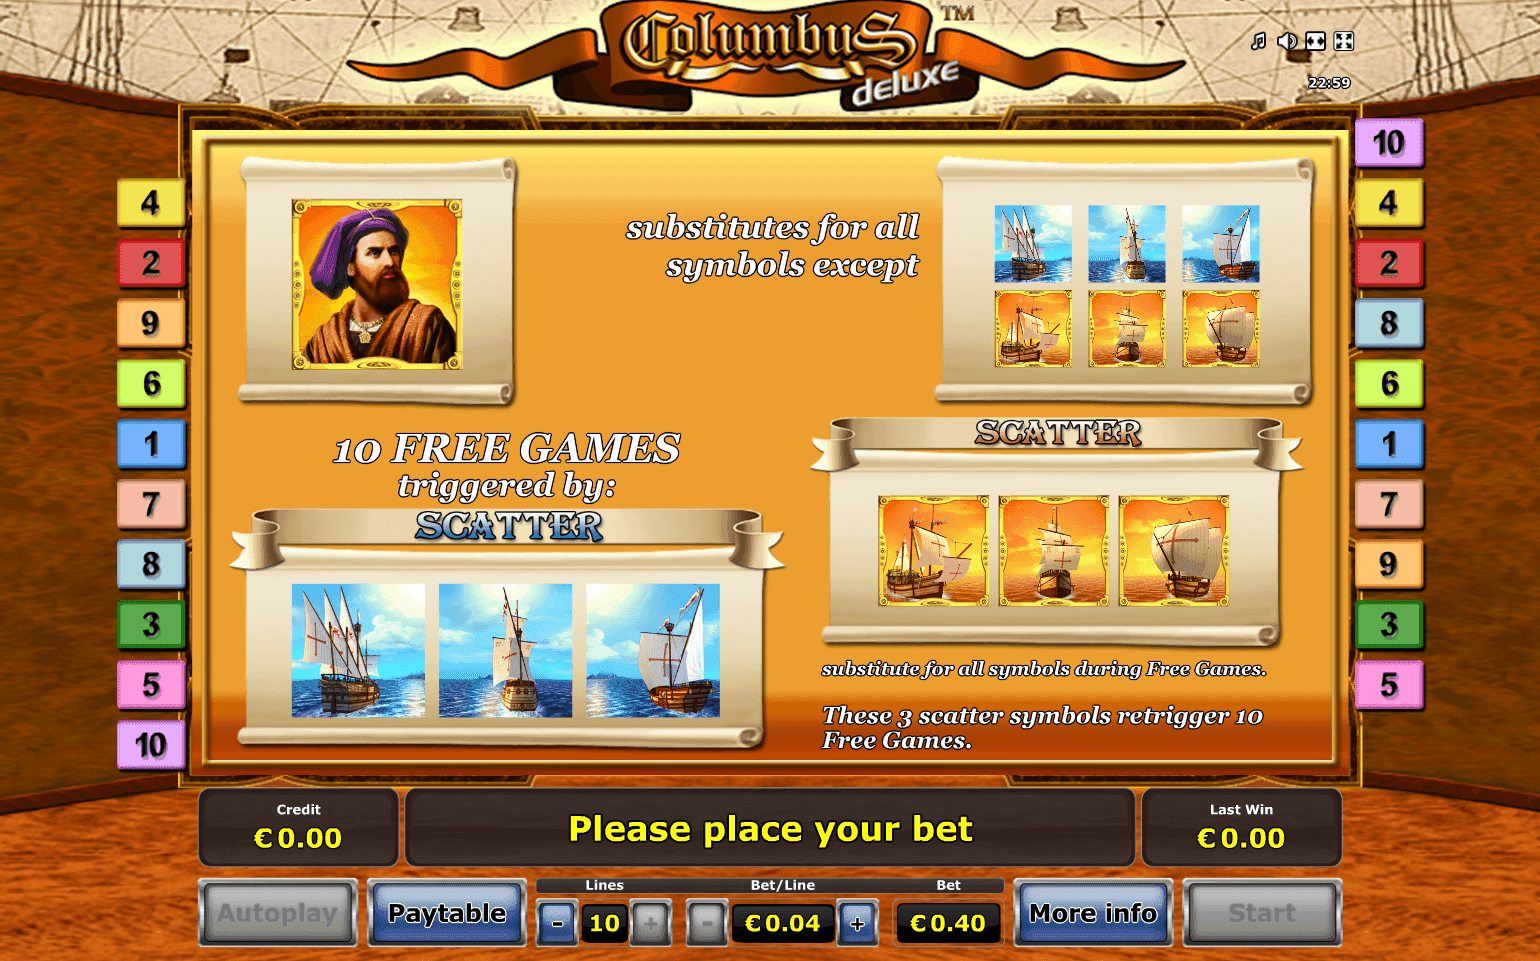 royal vegas online casino download deluxe bedeutung